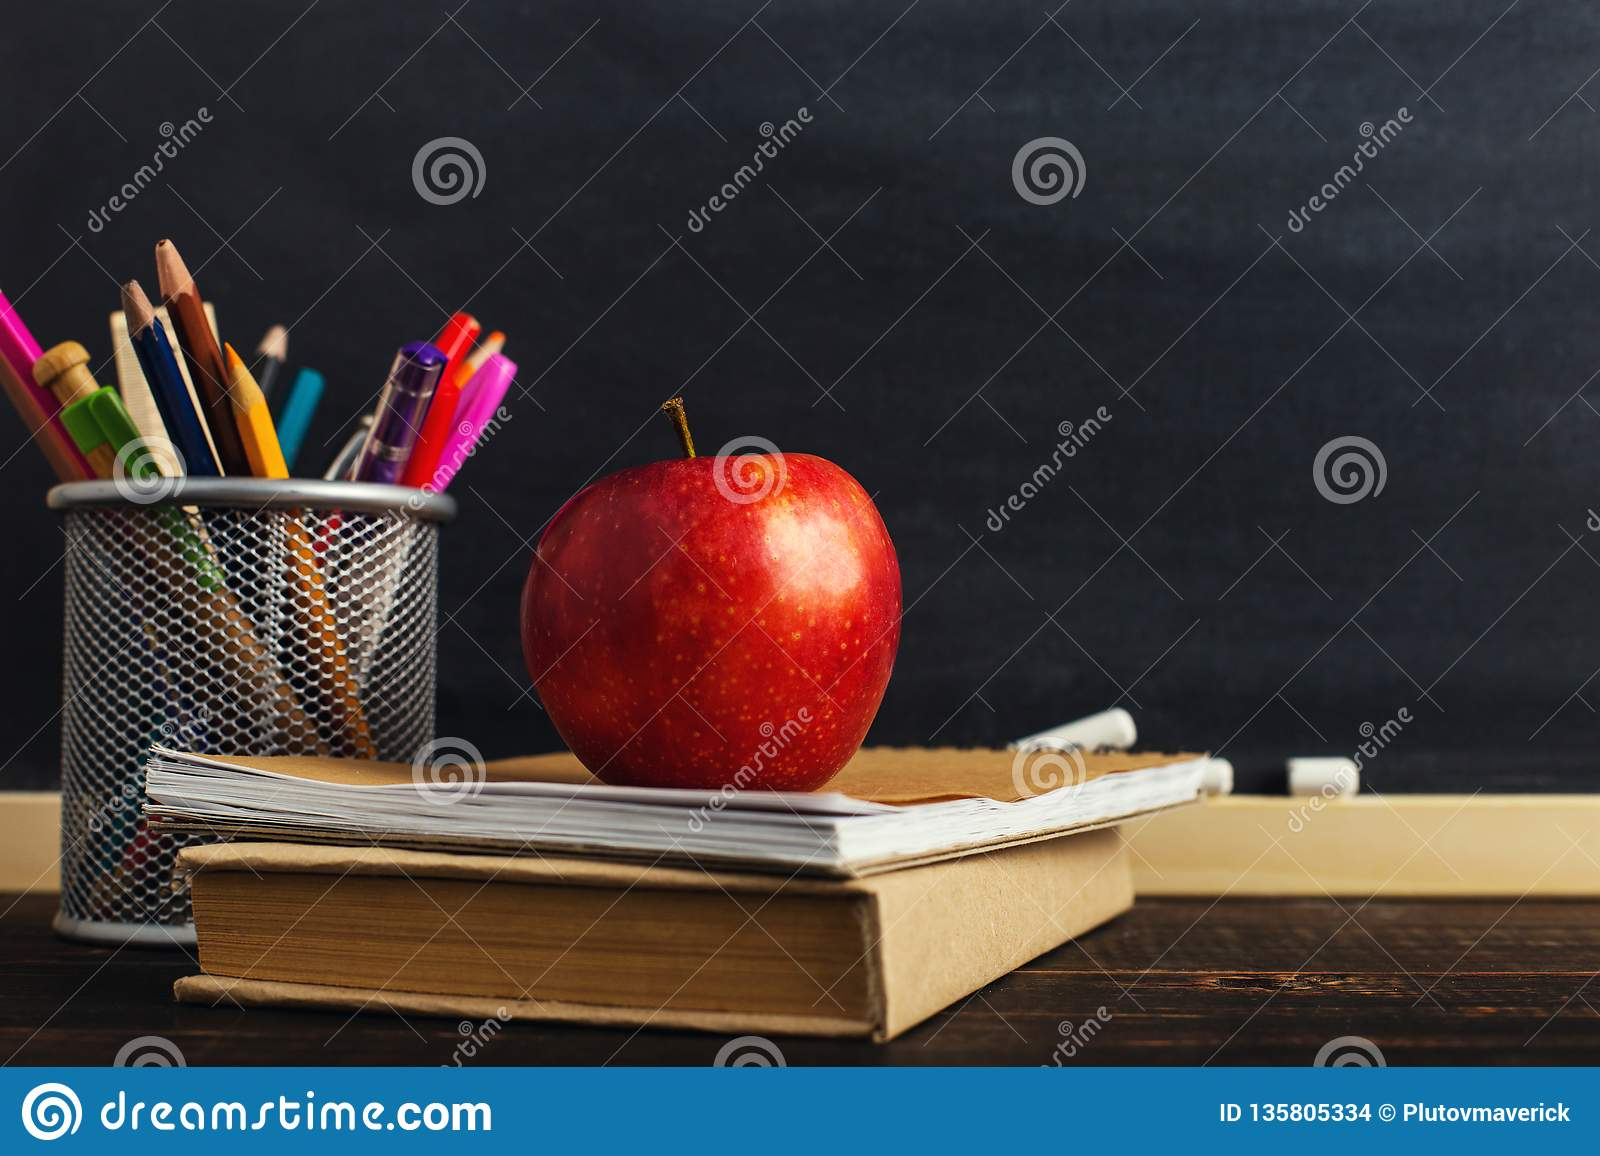 Teacher`s desk with writing materials, a book and an apple, a blank for text or a background for a school theme. Copy space